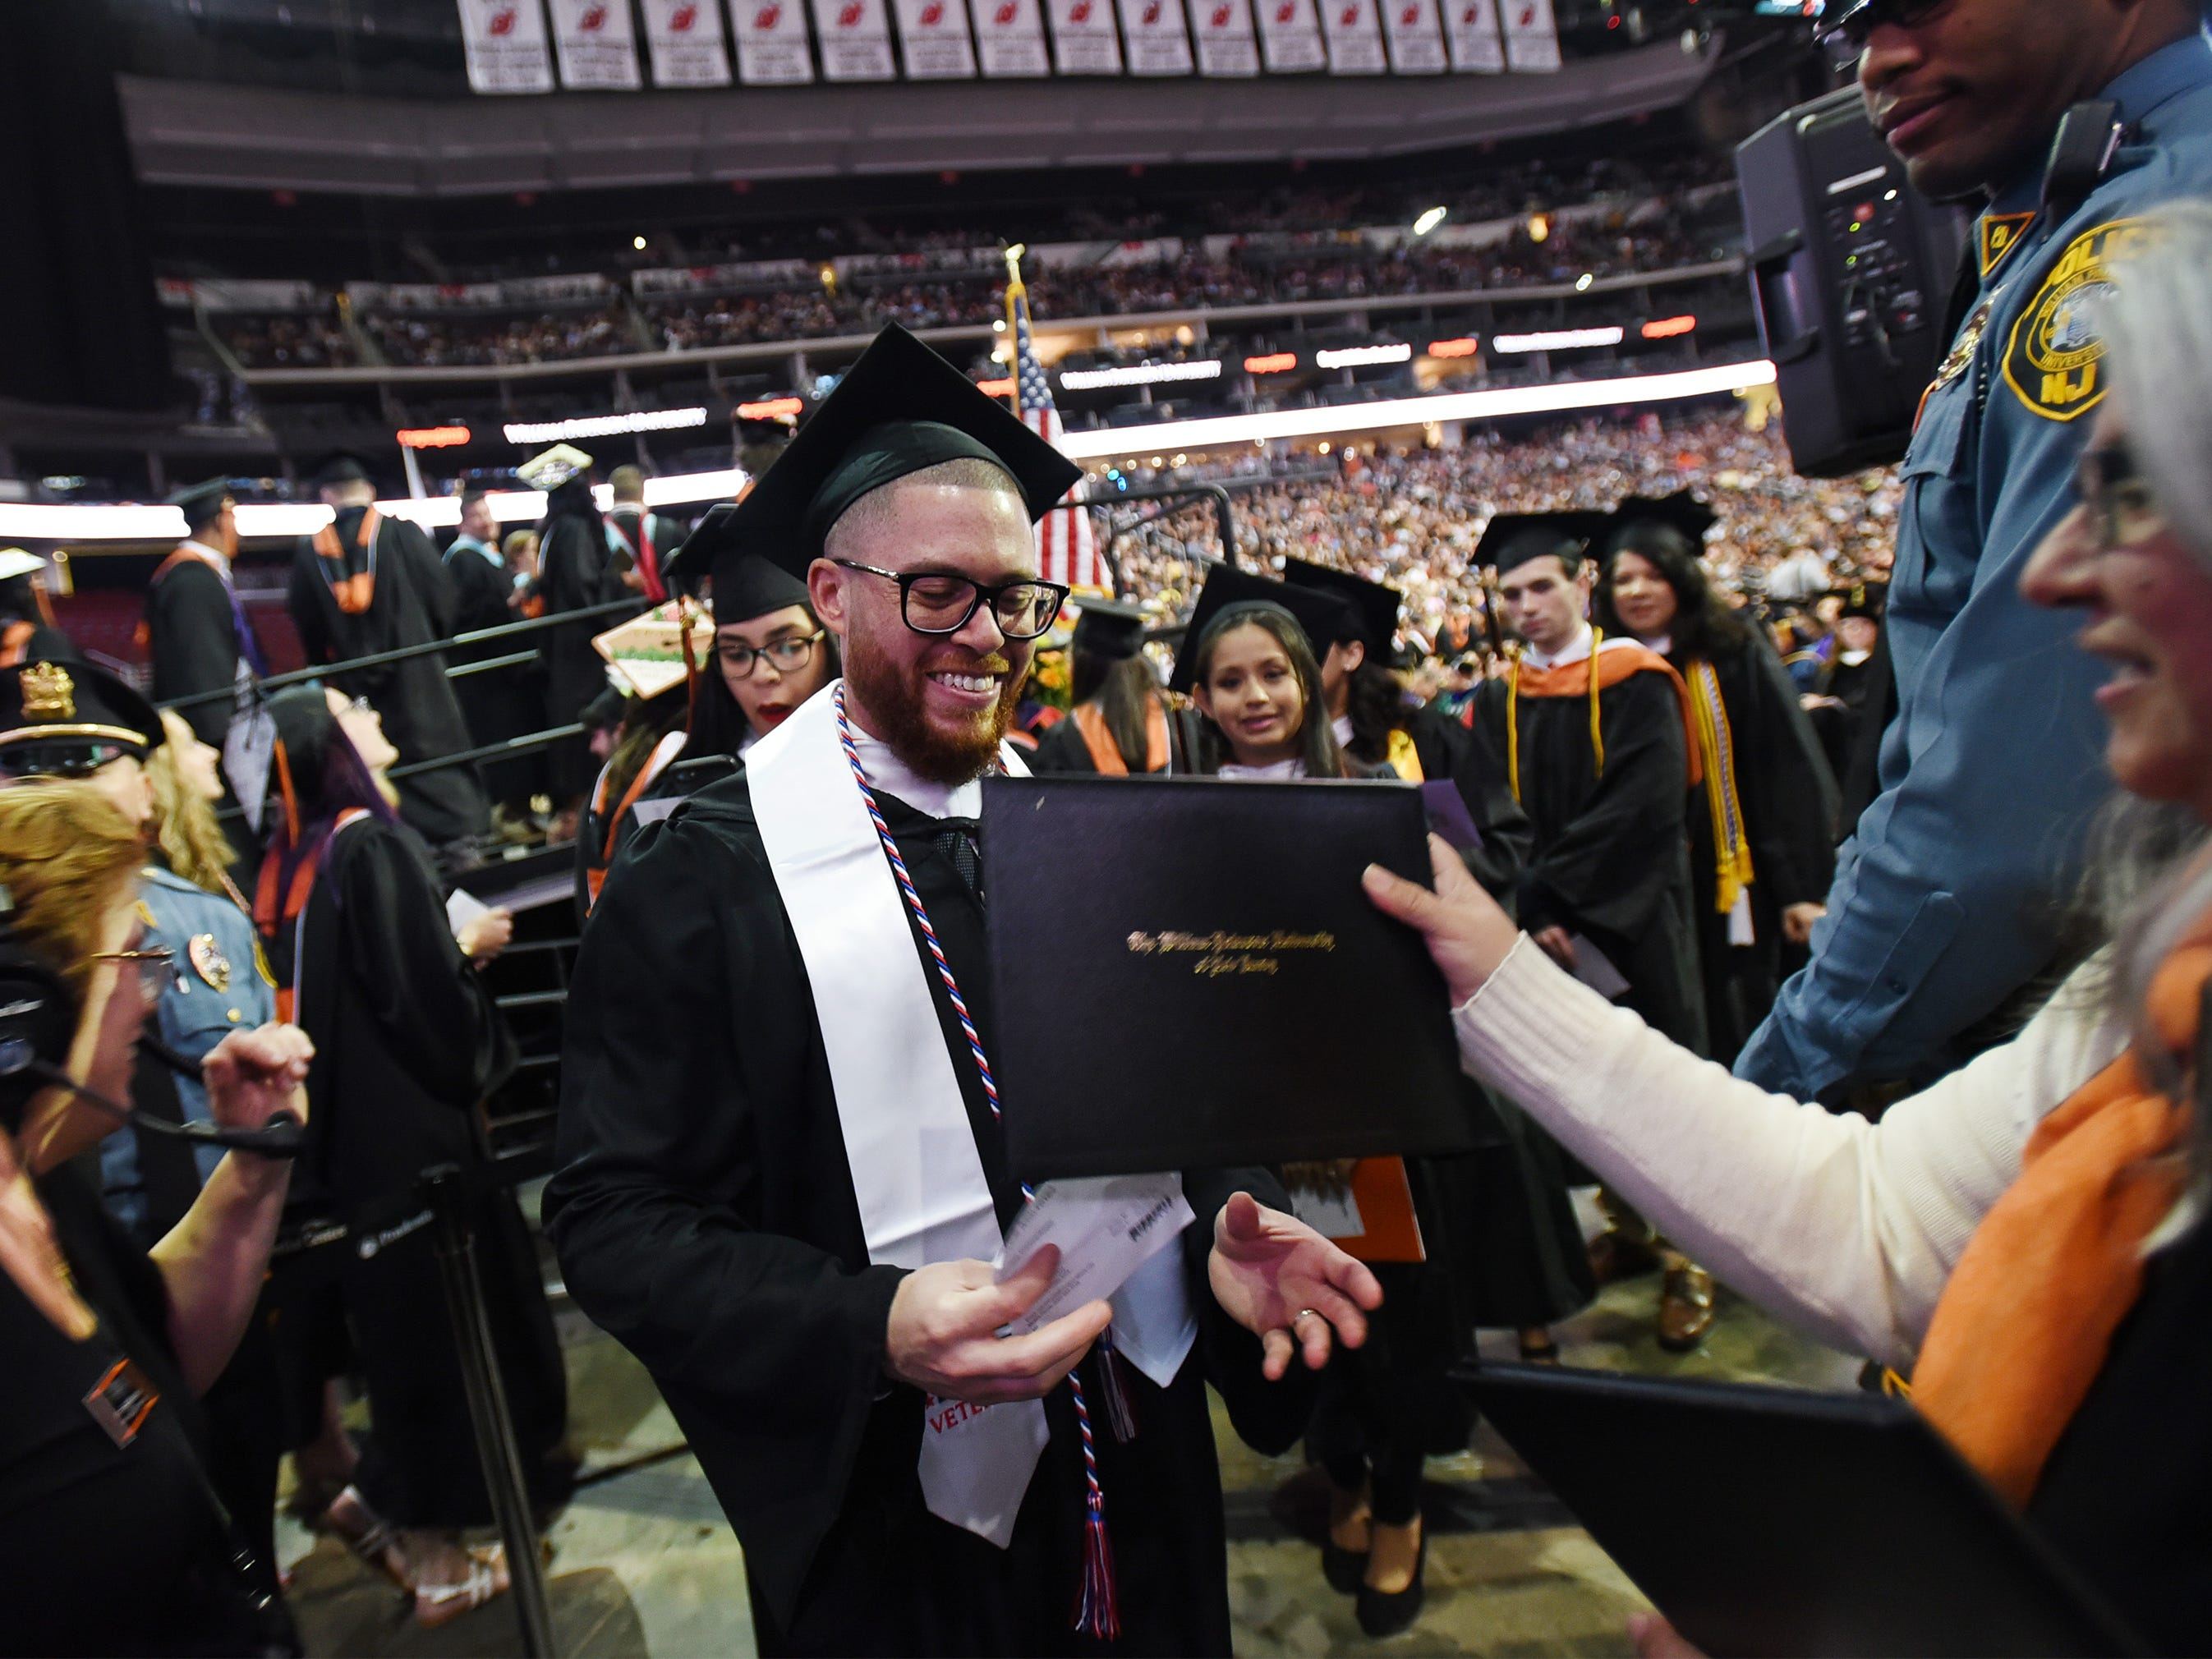 Jacob Martinez (age 36), of Weehawken, who Majored in Broadcast Journalism, an Army veteran and native of Puerto Rico, receives his degree during the William Paterson University 2019 Commencement at the Prudential Center in Newark on 05/15/19.